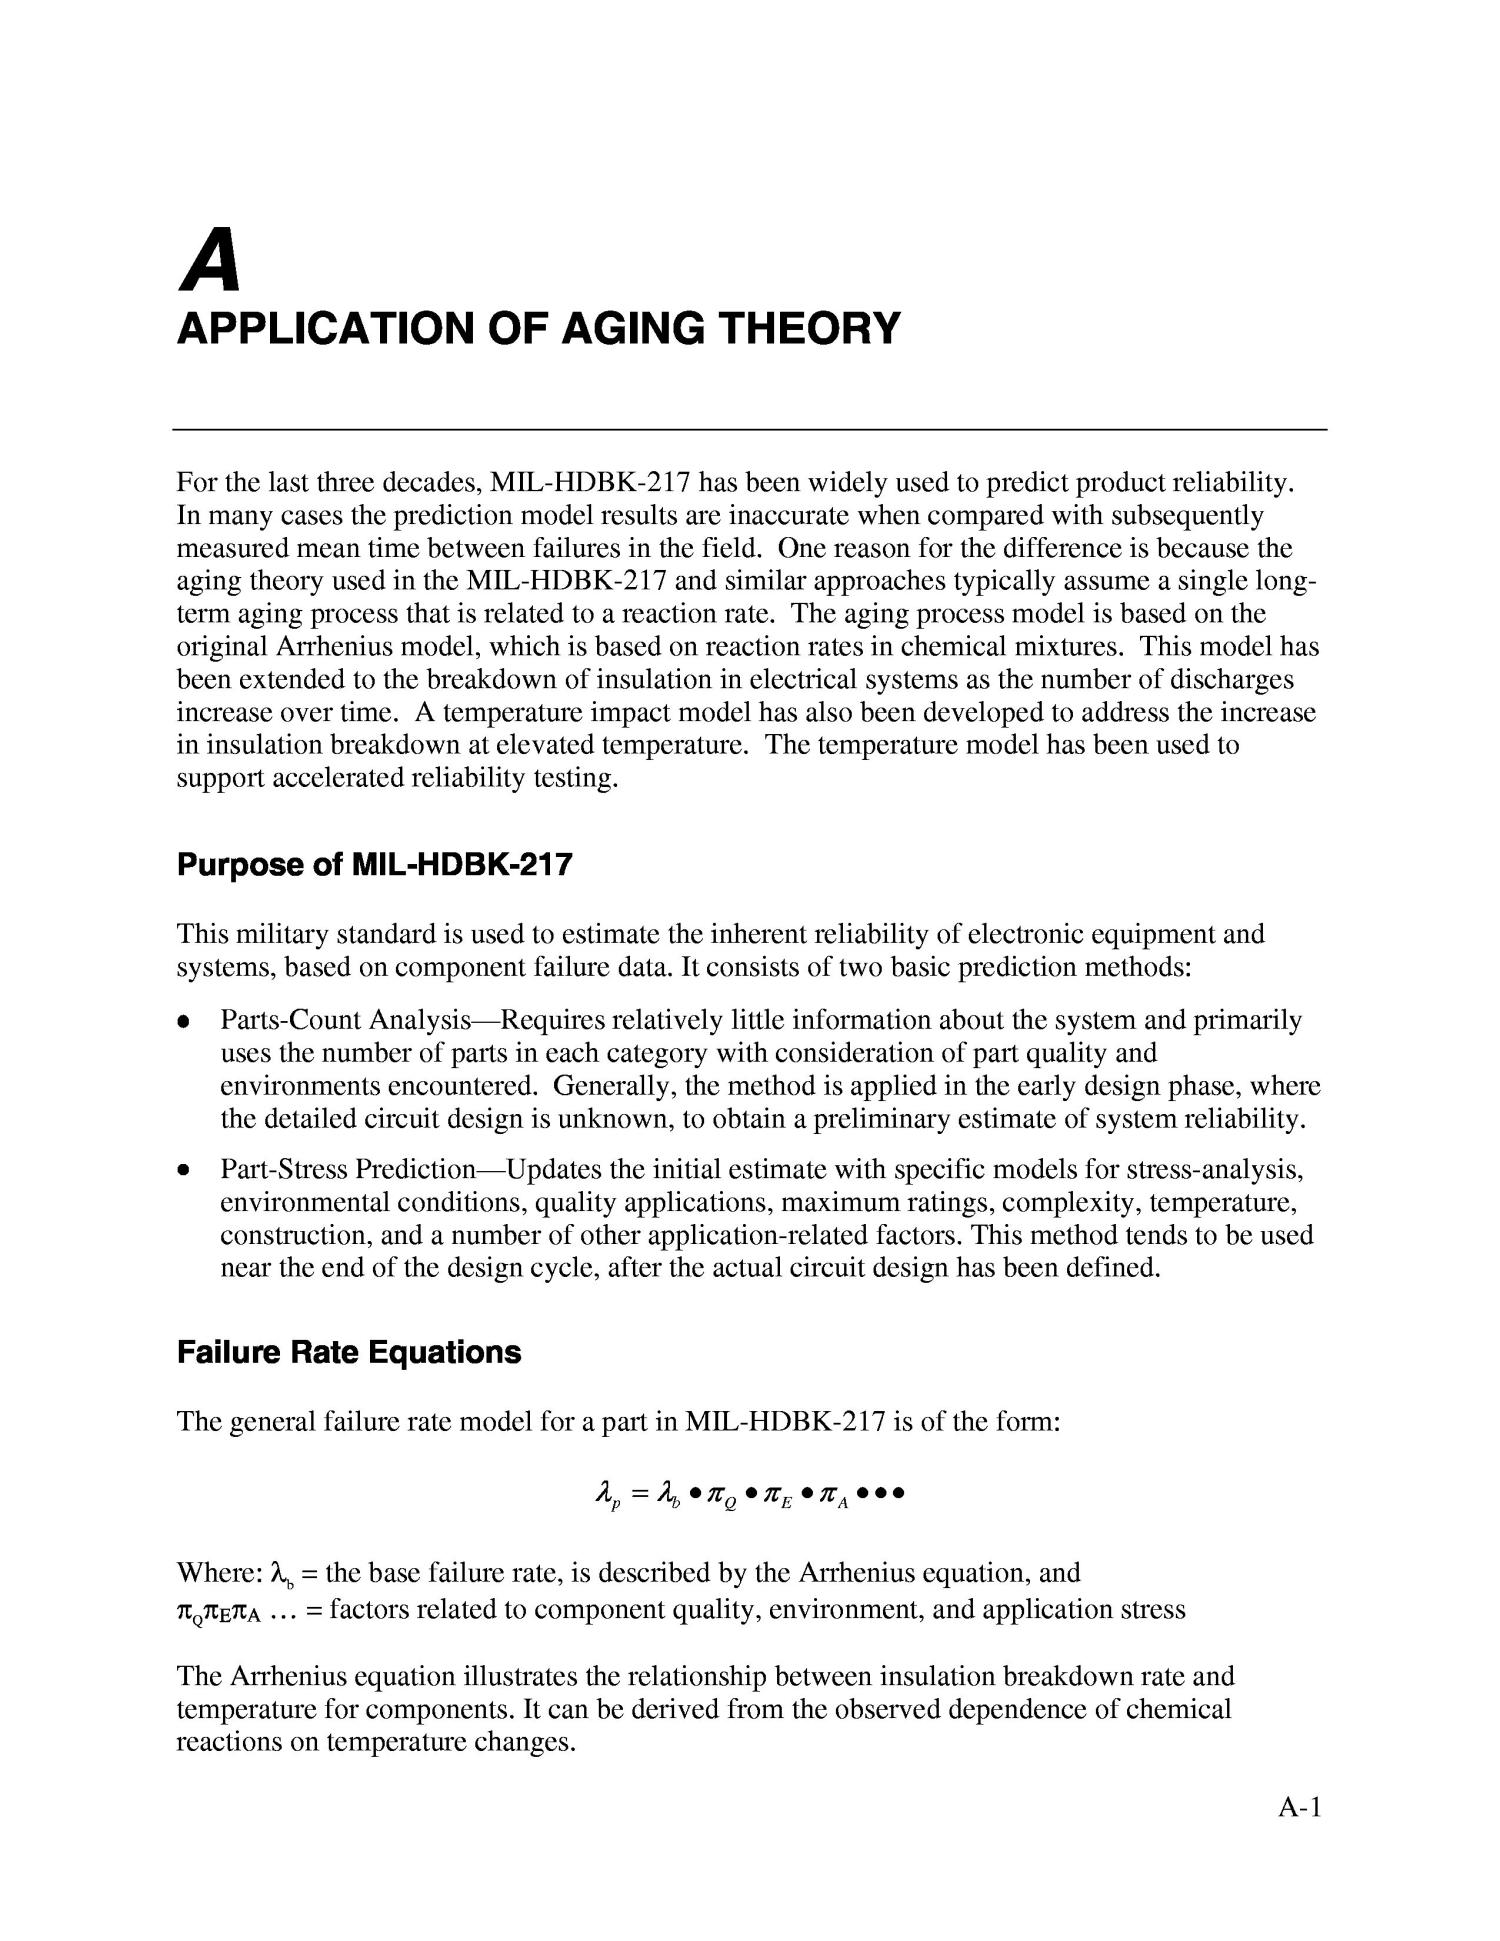 Evaluating The Effects Of Aging On Electronic Instrument And Control Circuit Design Methods Boards Components In Nuclear Power Plants Digital Library